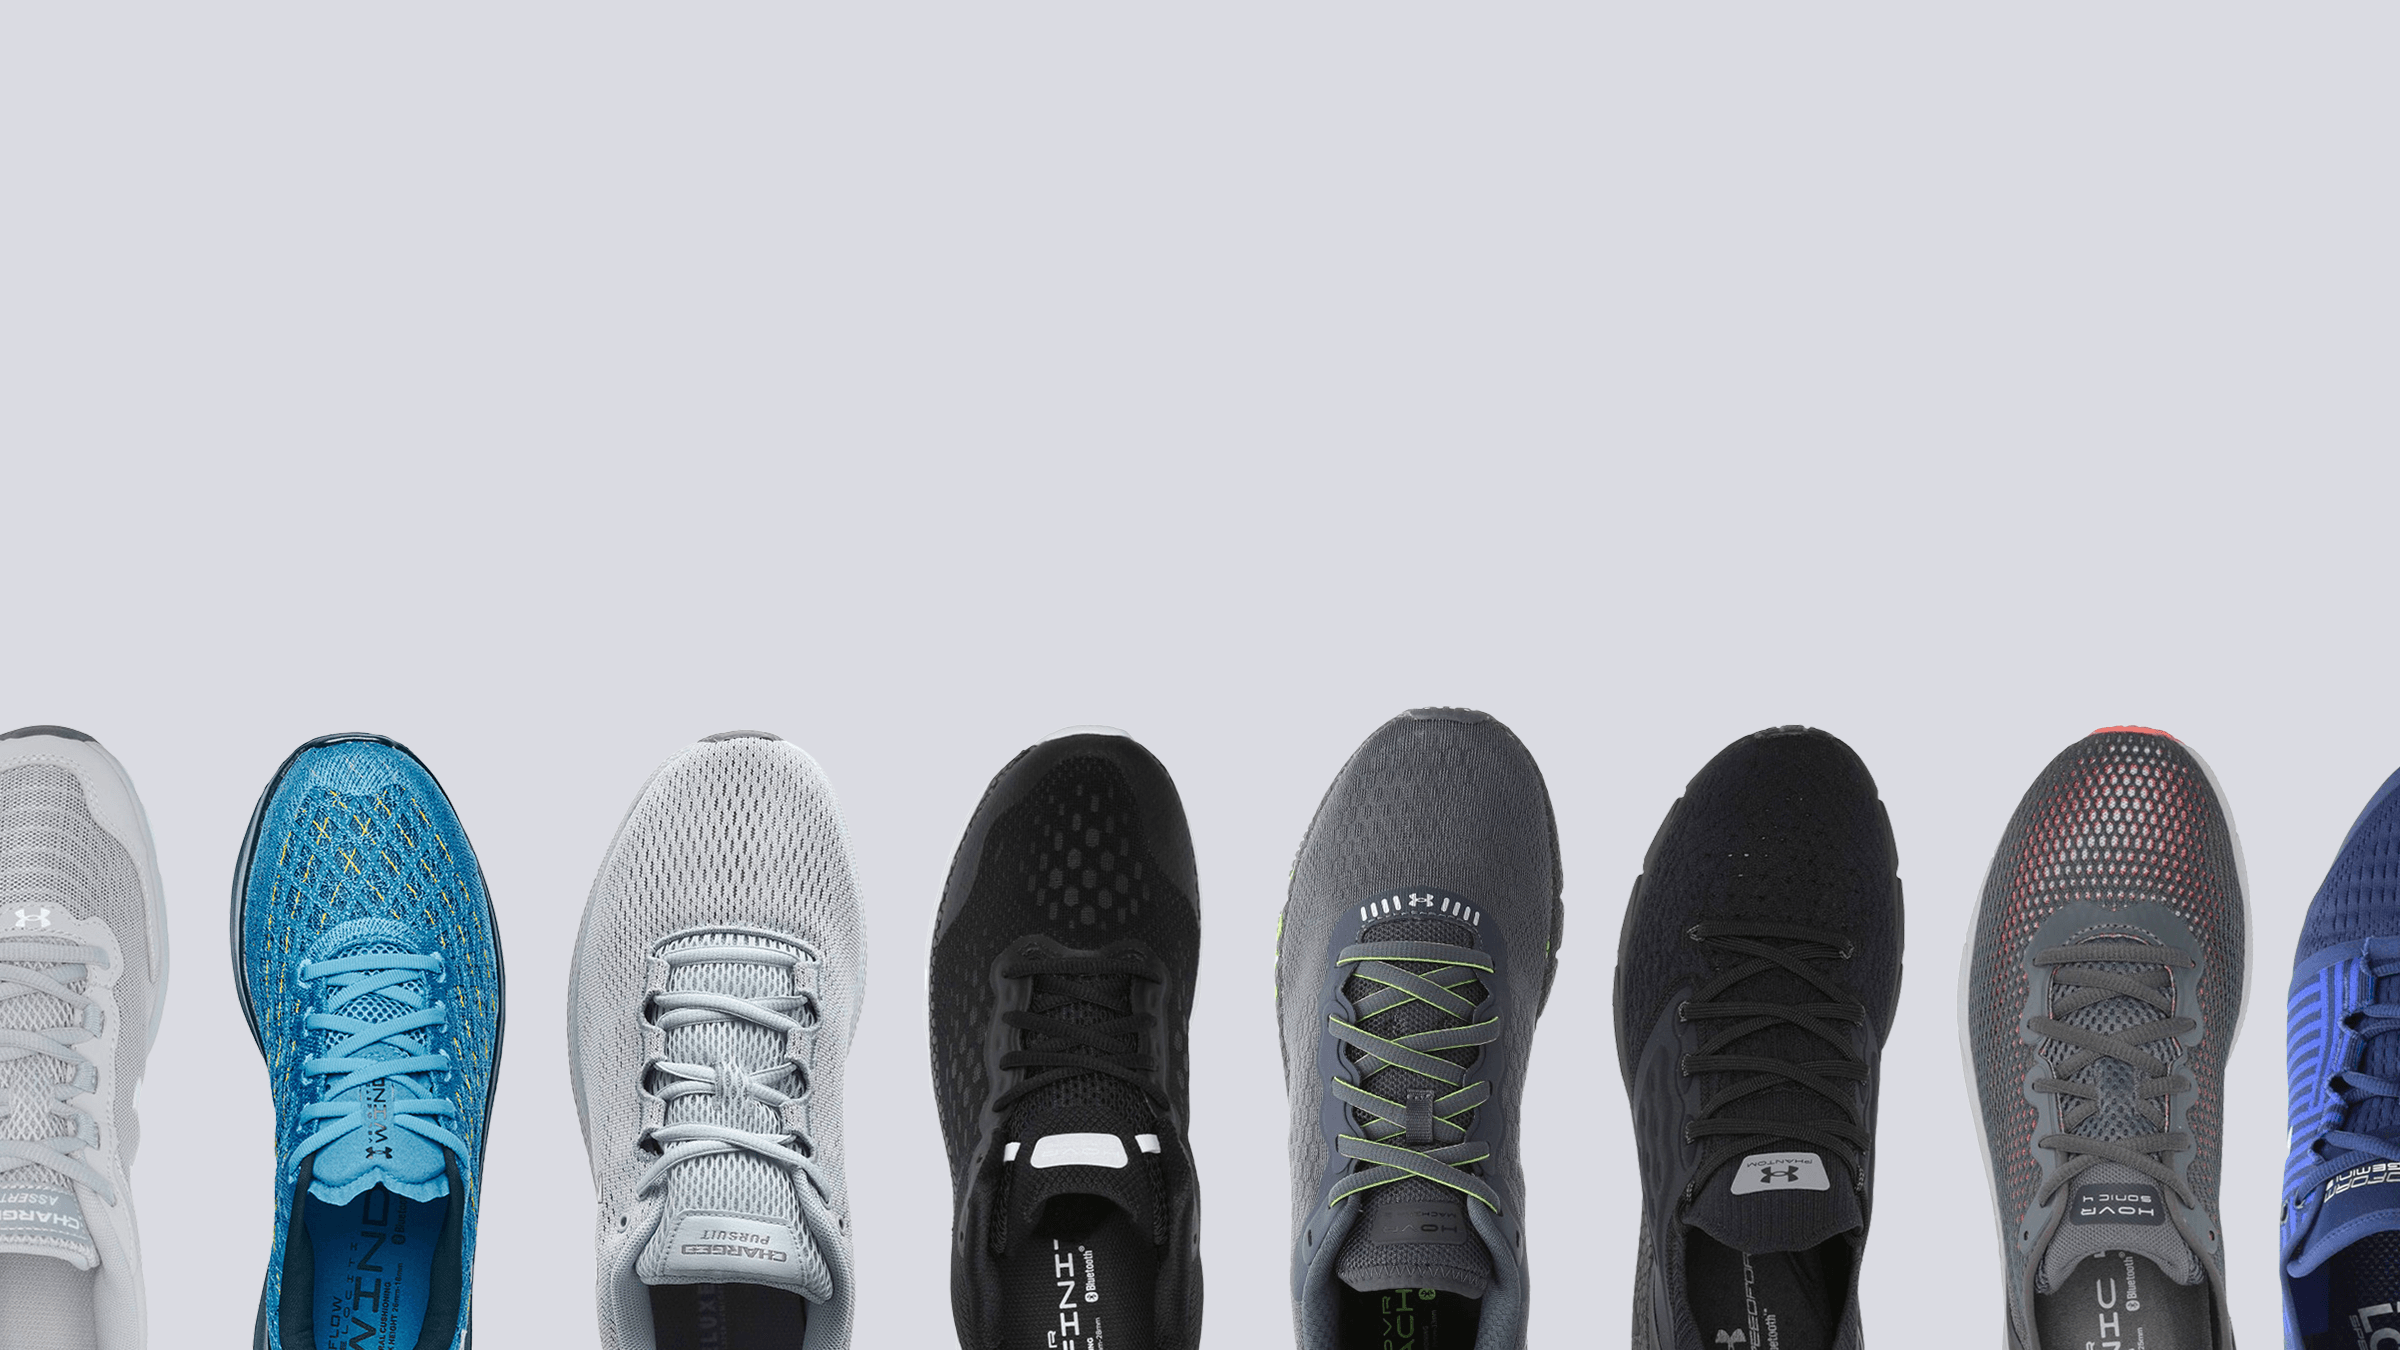 10 Best Under Armour Running Shoes in 2021